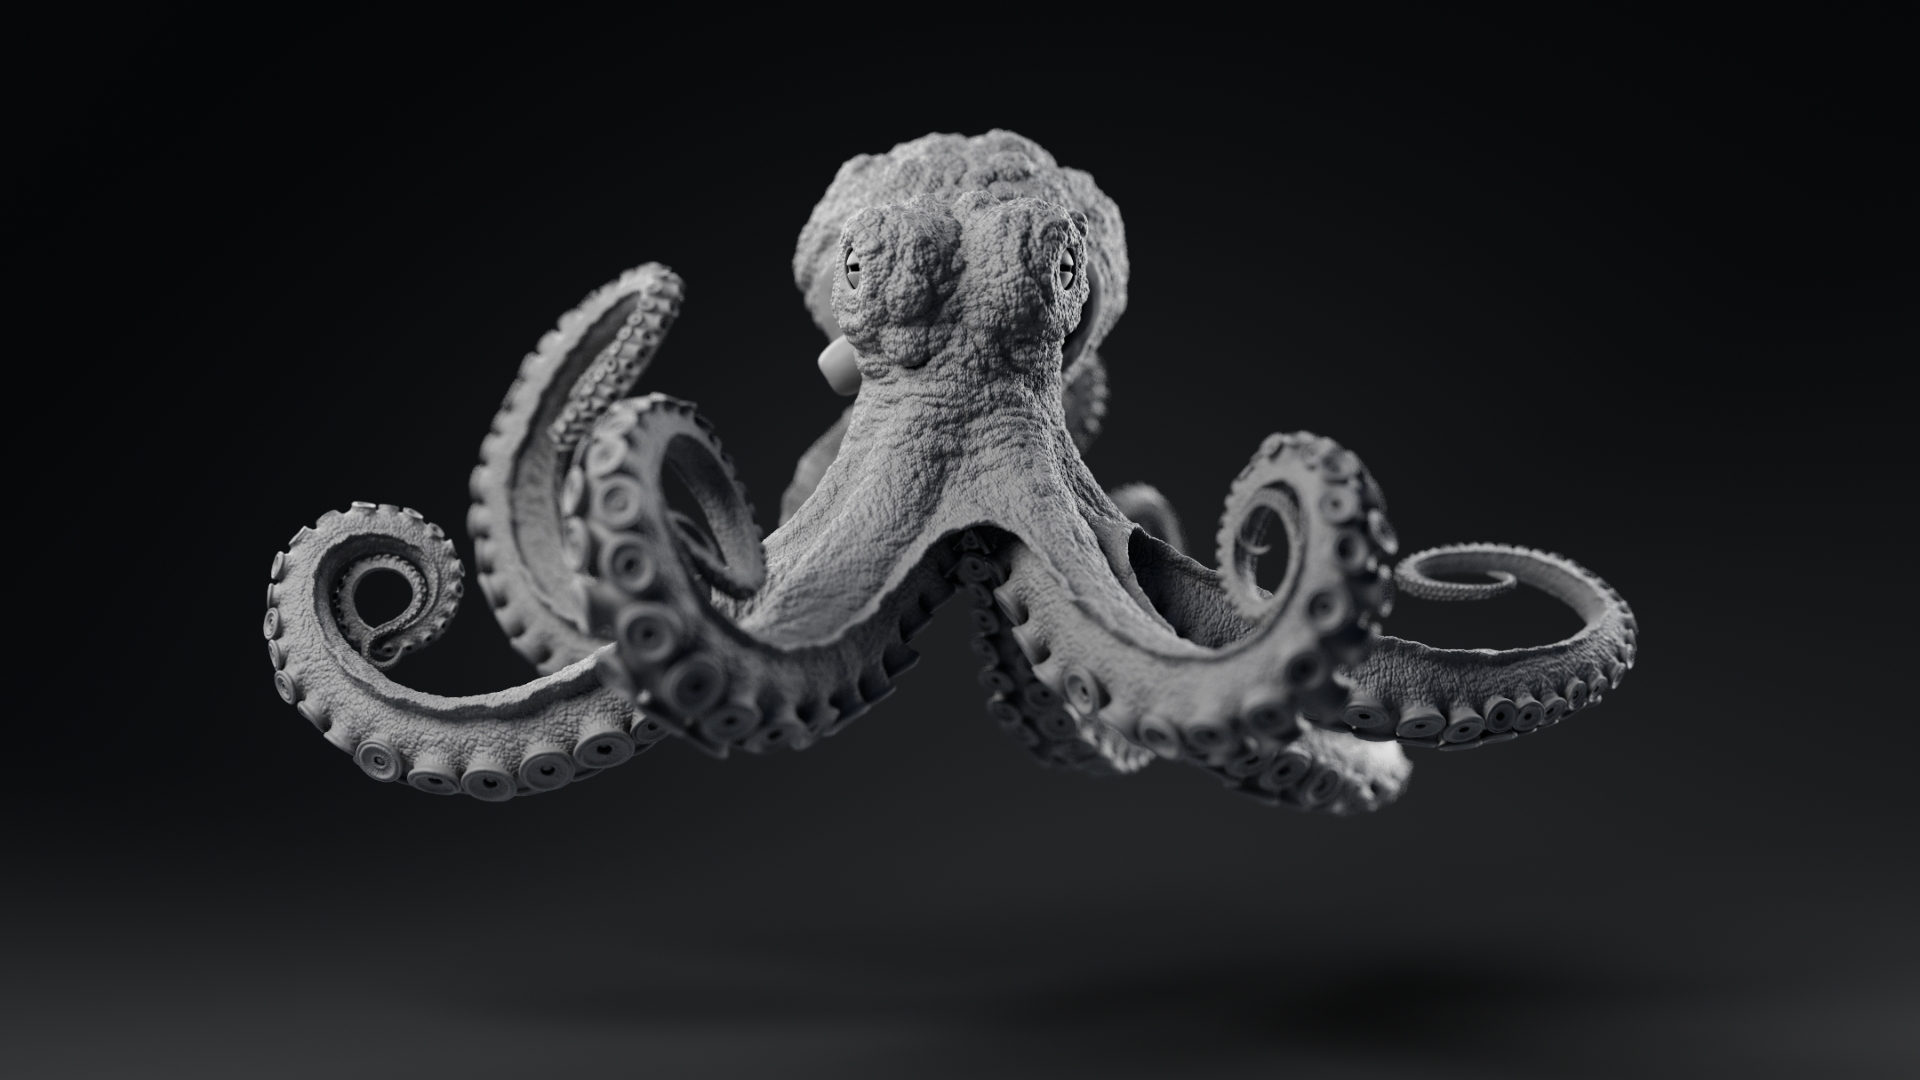 Octopus_model_TurntableFrames_Grey_ZbrushCentral_v021_0001.jpg